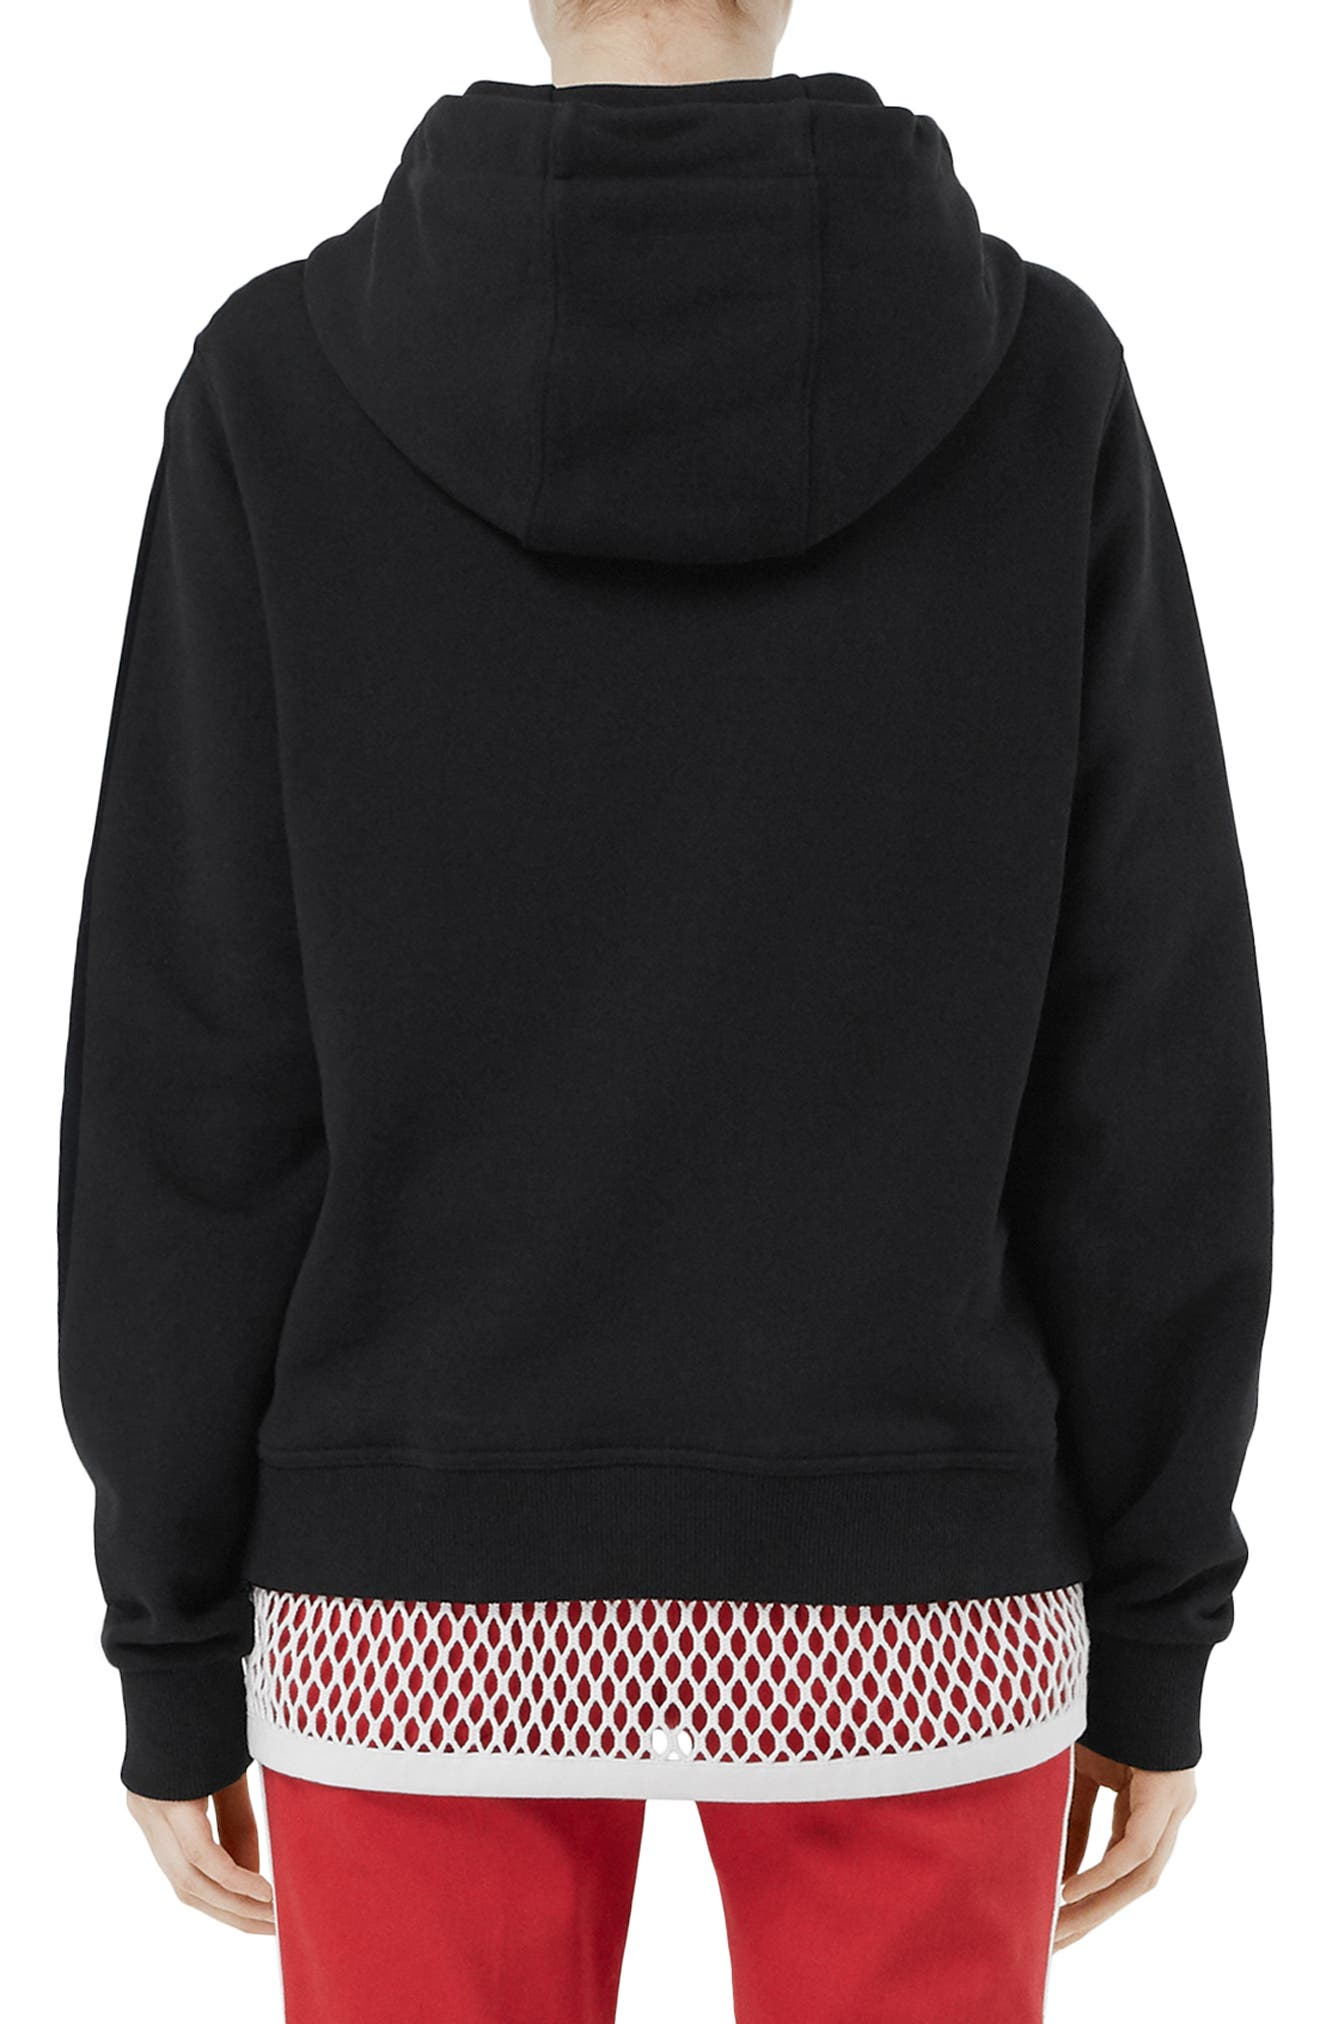 BURBERRY, Poulter Logo Print Hoodie, Alternate thumbnail 2, color, BLACK